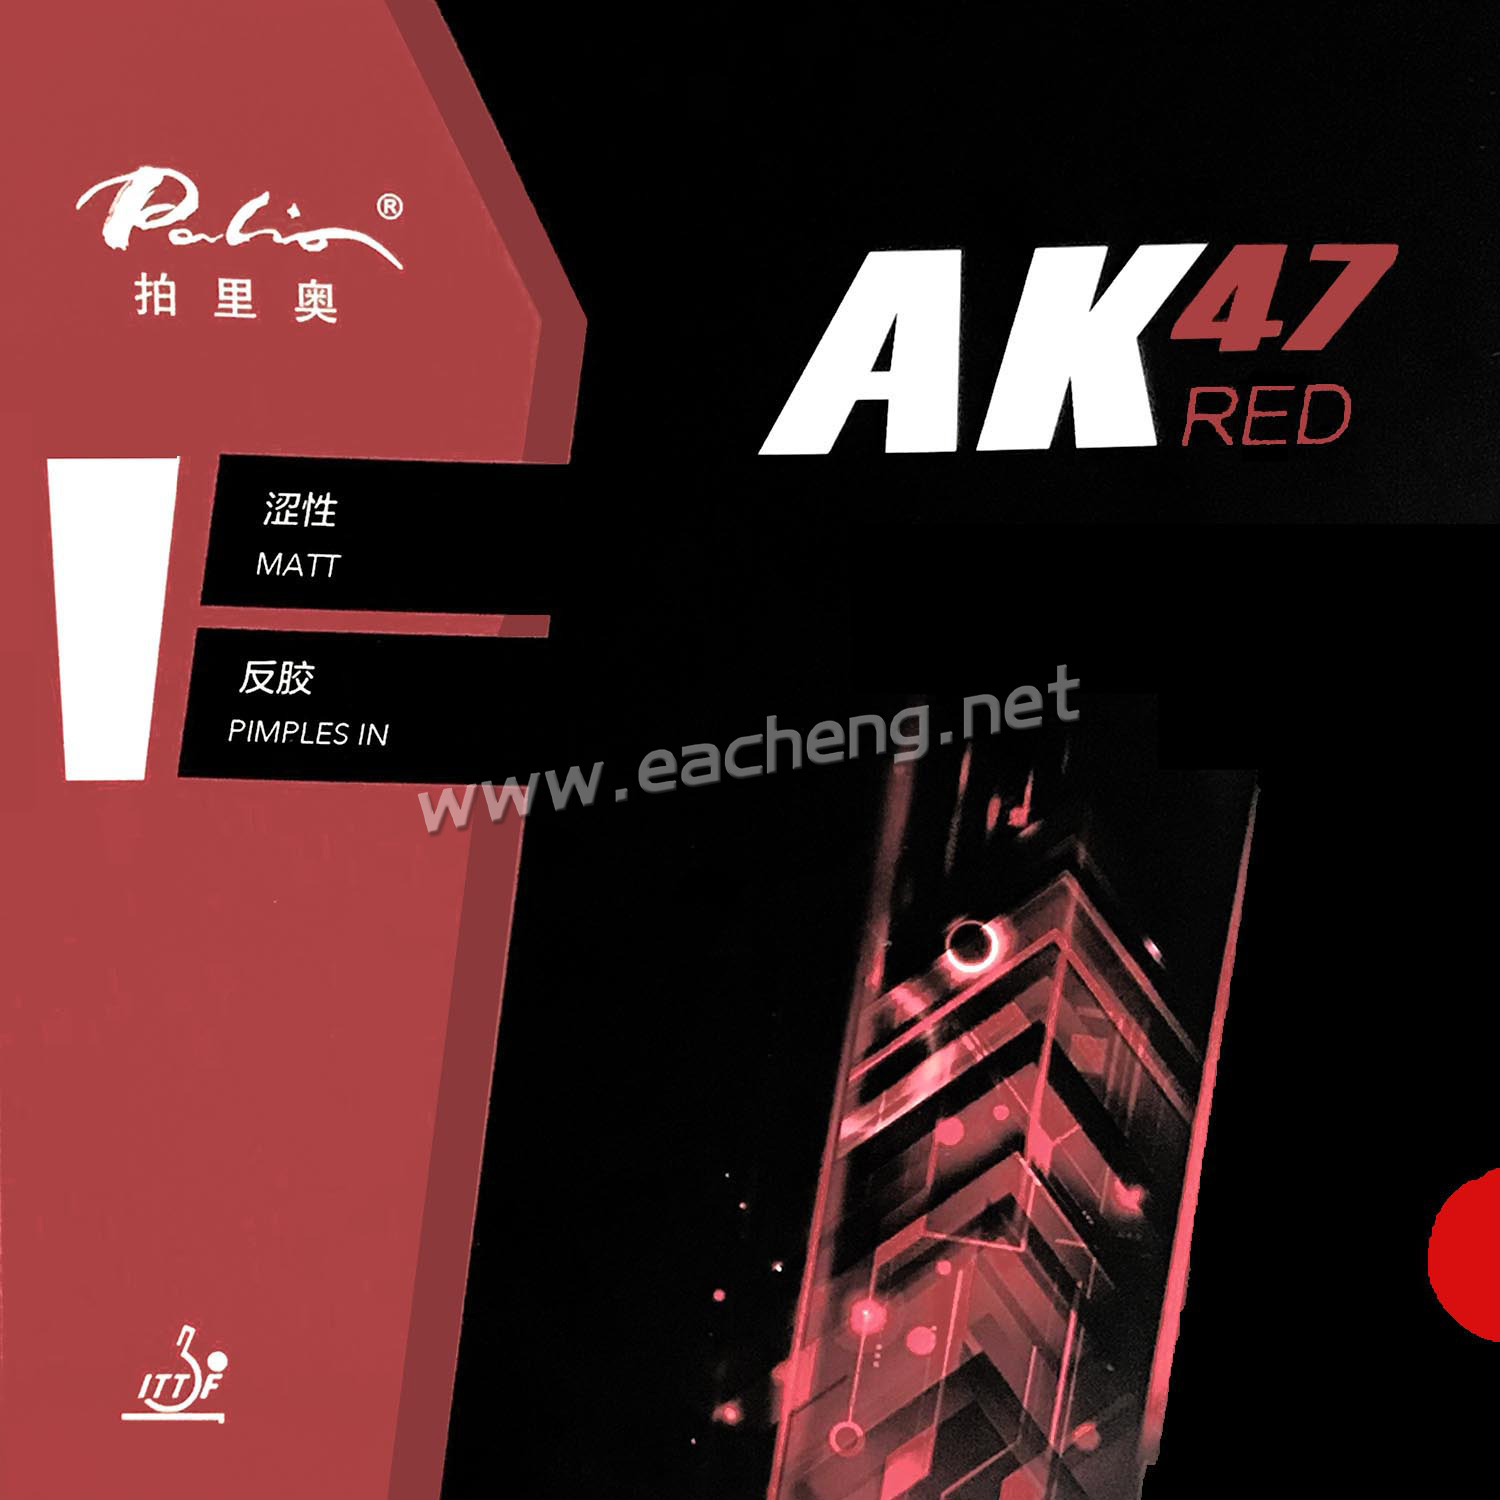 Palio  AK47 RED